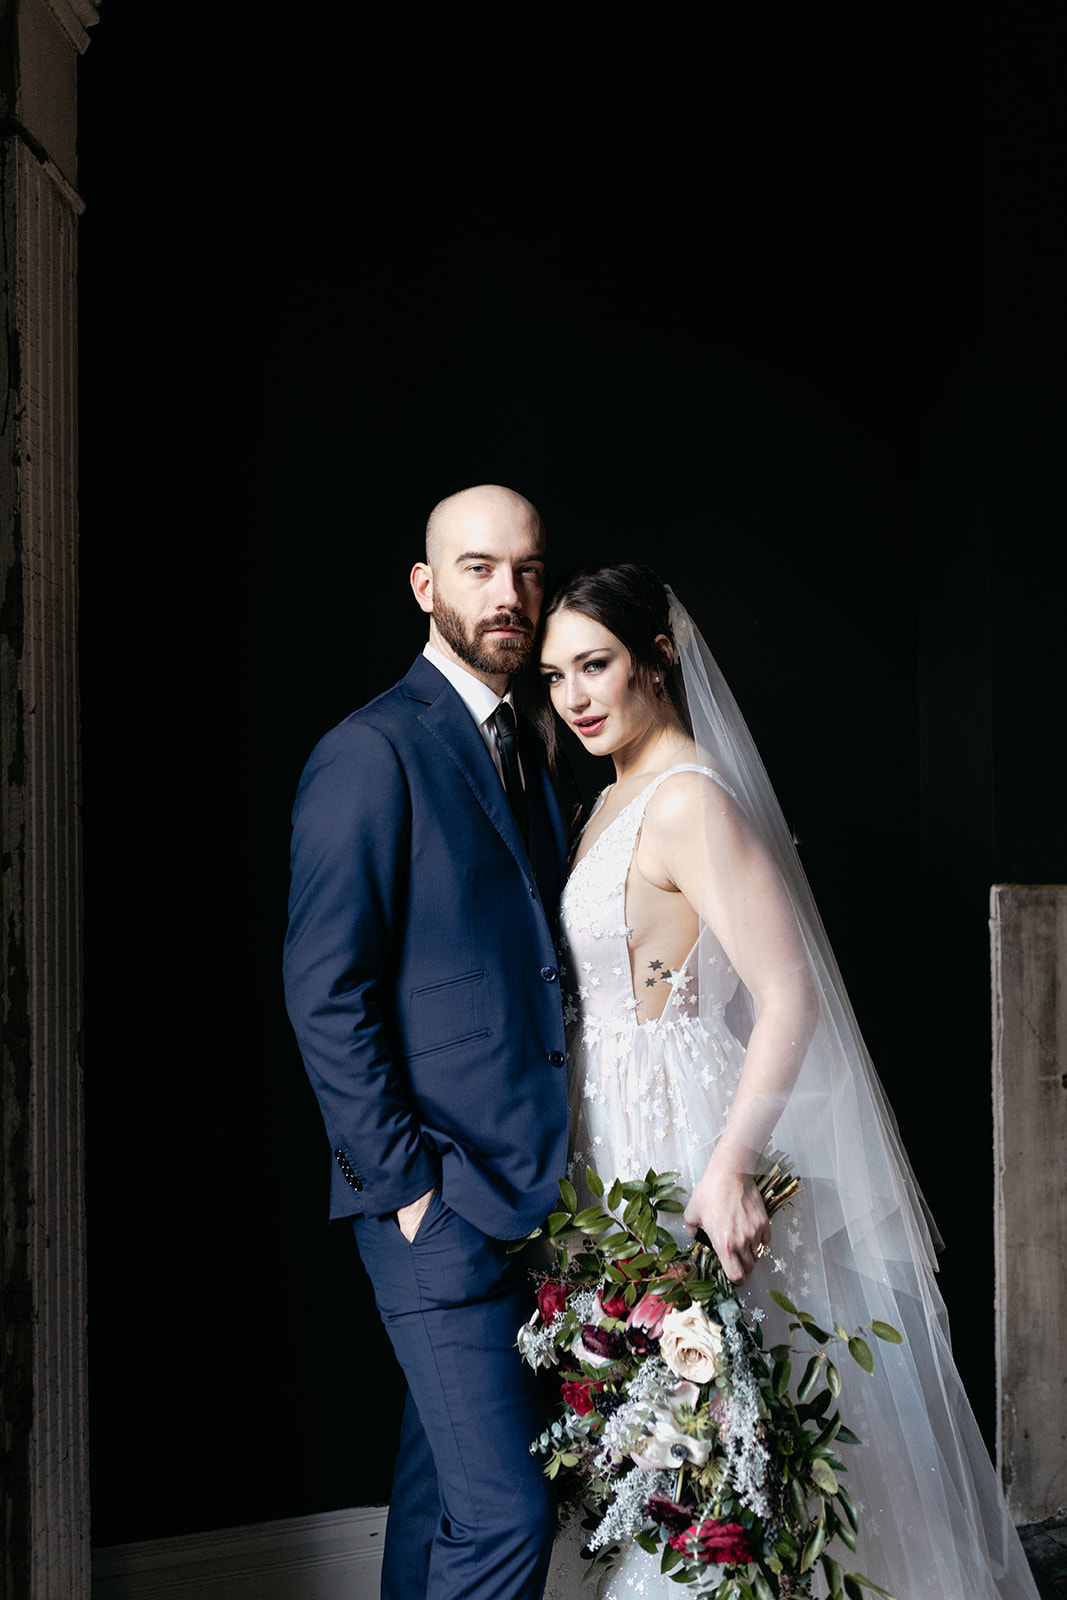 Starry night inspired wedding! Jewel tone bride's bouquet and star covered wedding dress.